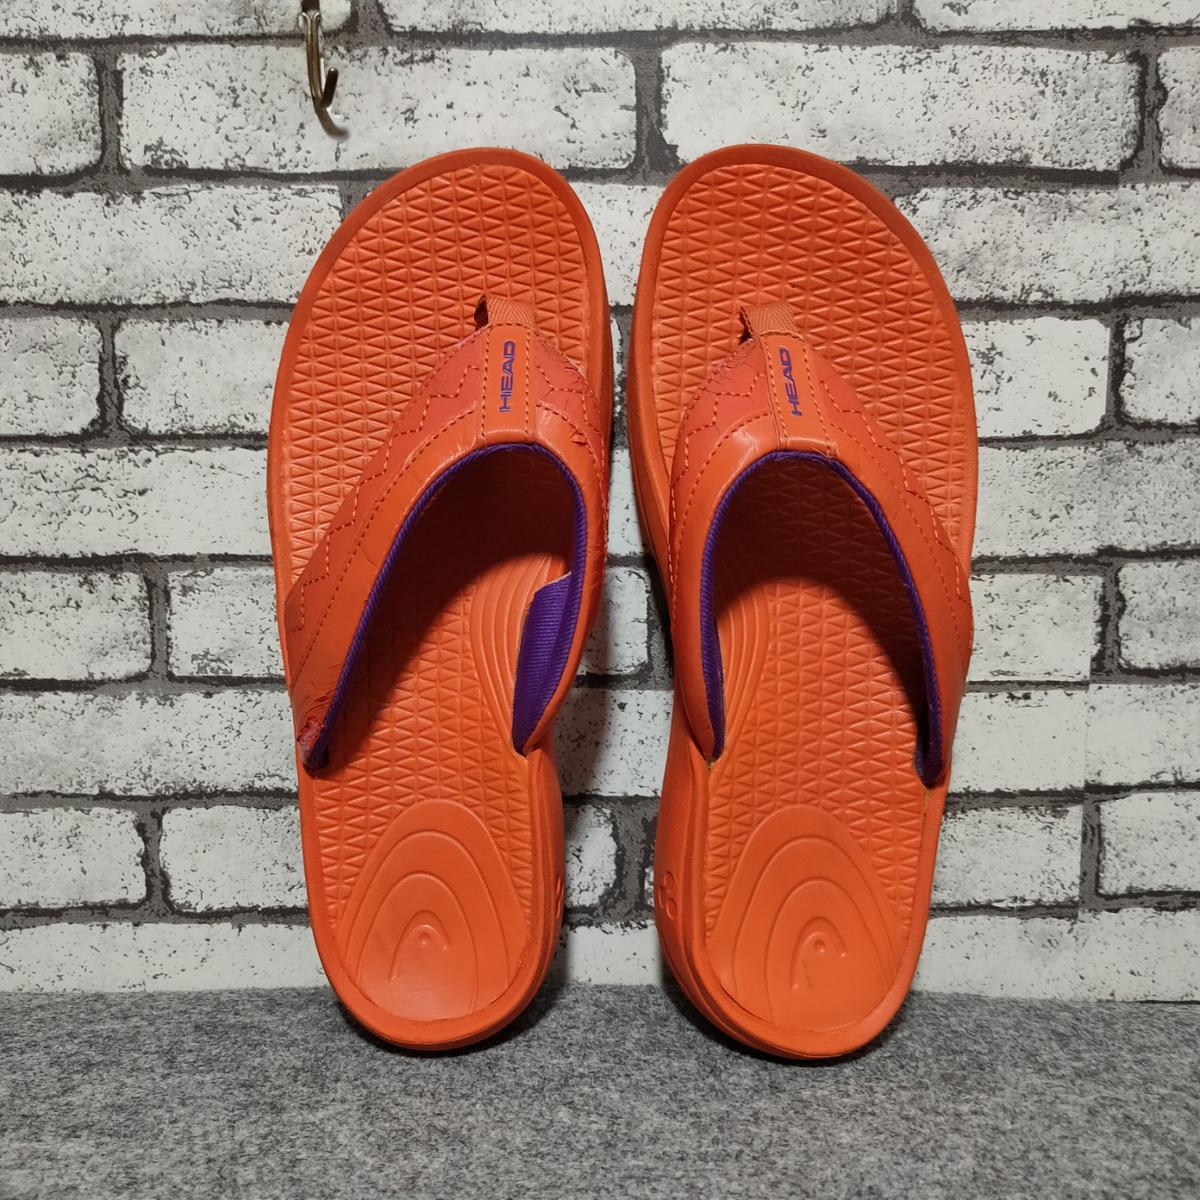 🔥 Head flip flops 📍size Eur 38 24 Cm ————————————————- When paypal complete. We ship within 1 day. We ship economy courier ,please wait 12-24 day to arrive or request for special shipping take within 7 day The item will be ship along with tracking number Thank you so much